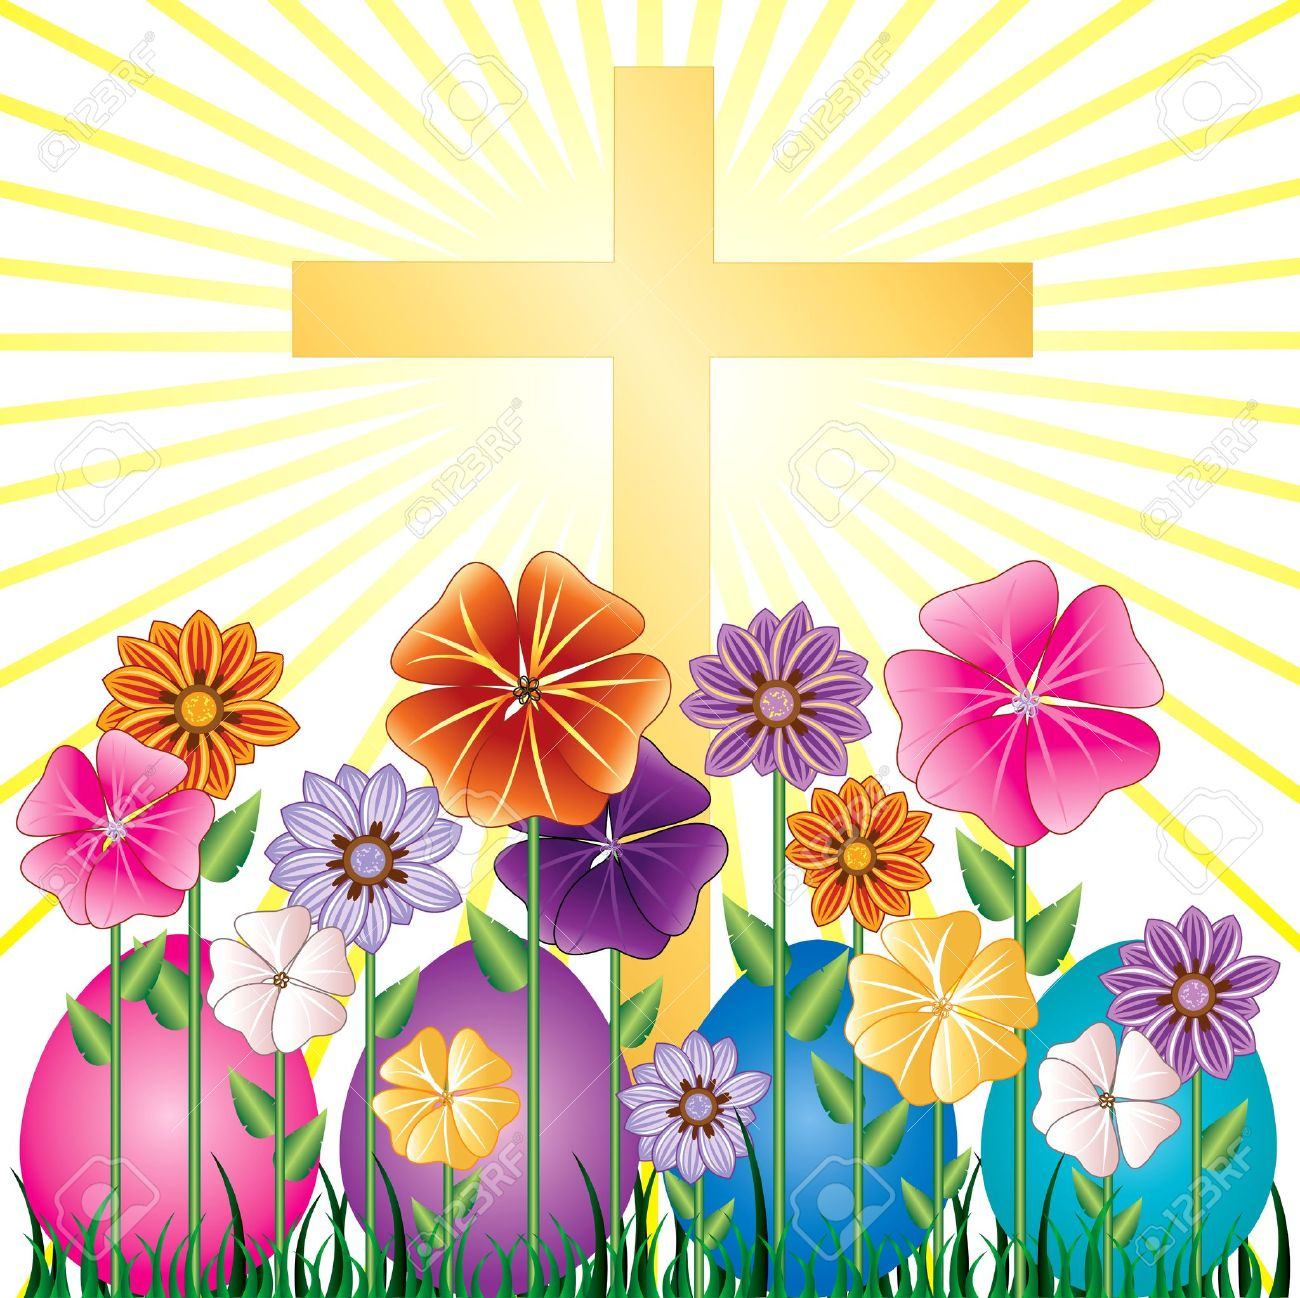 Violet daisy christian clipart picture black and white stock Free Religious Garden Cliparts, Download Free Clip Art, Free ... picture black and white stock